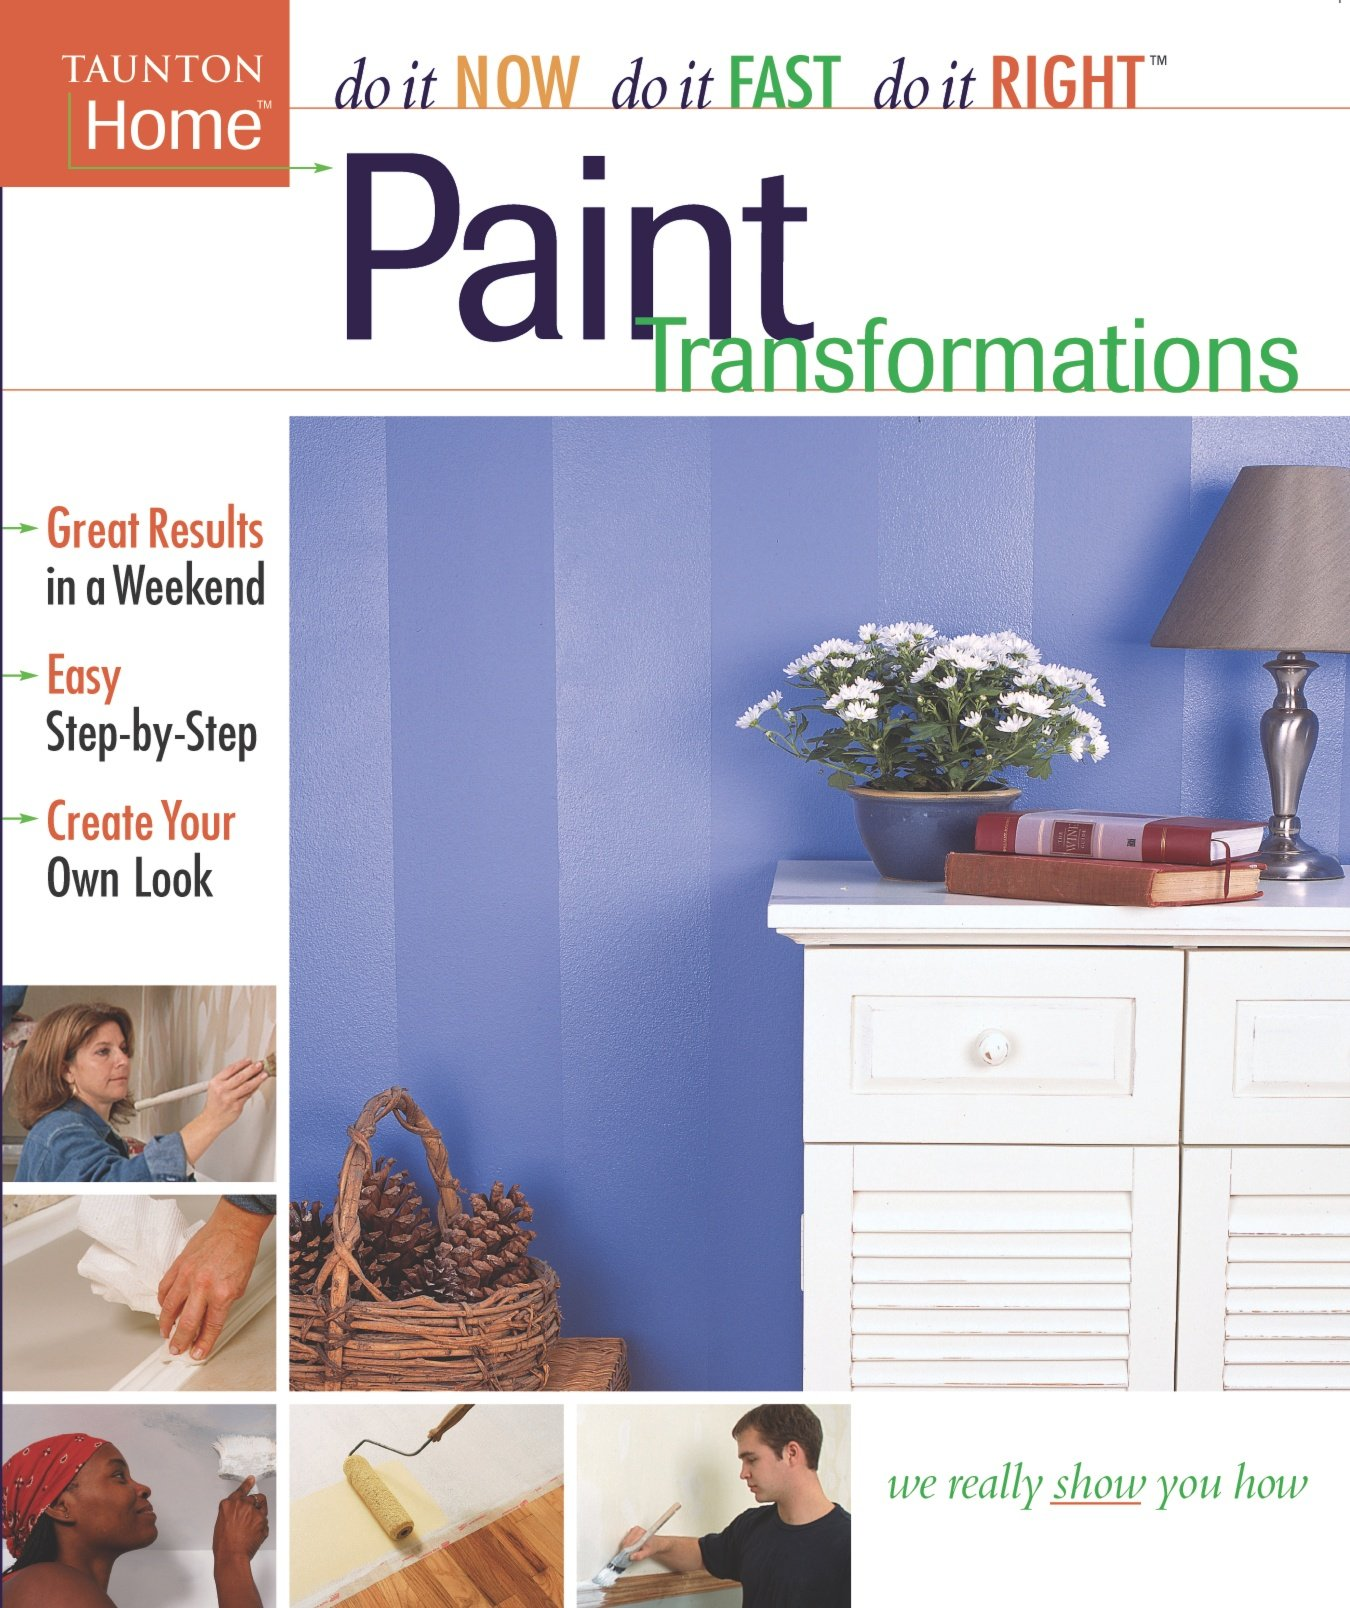 Paint Transformations Now Fast Right